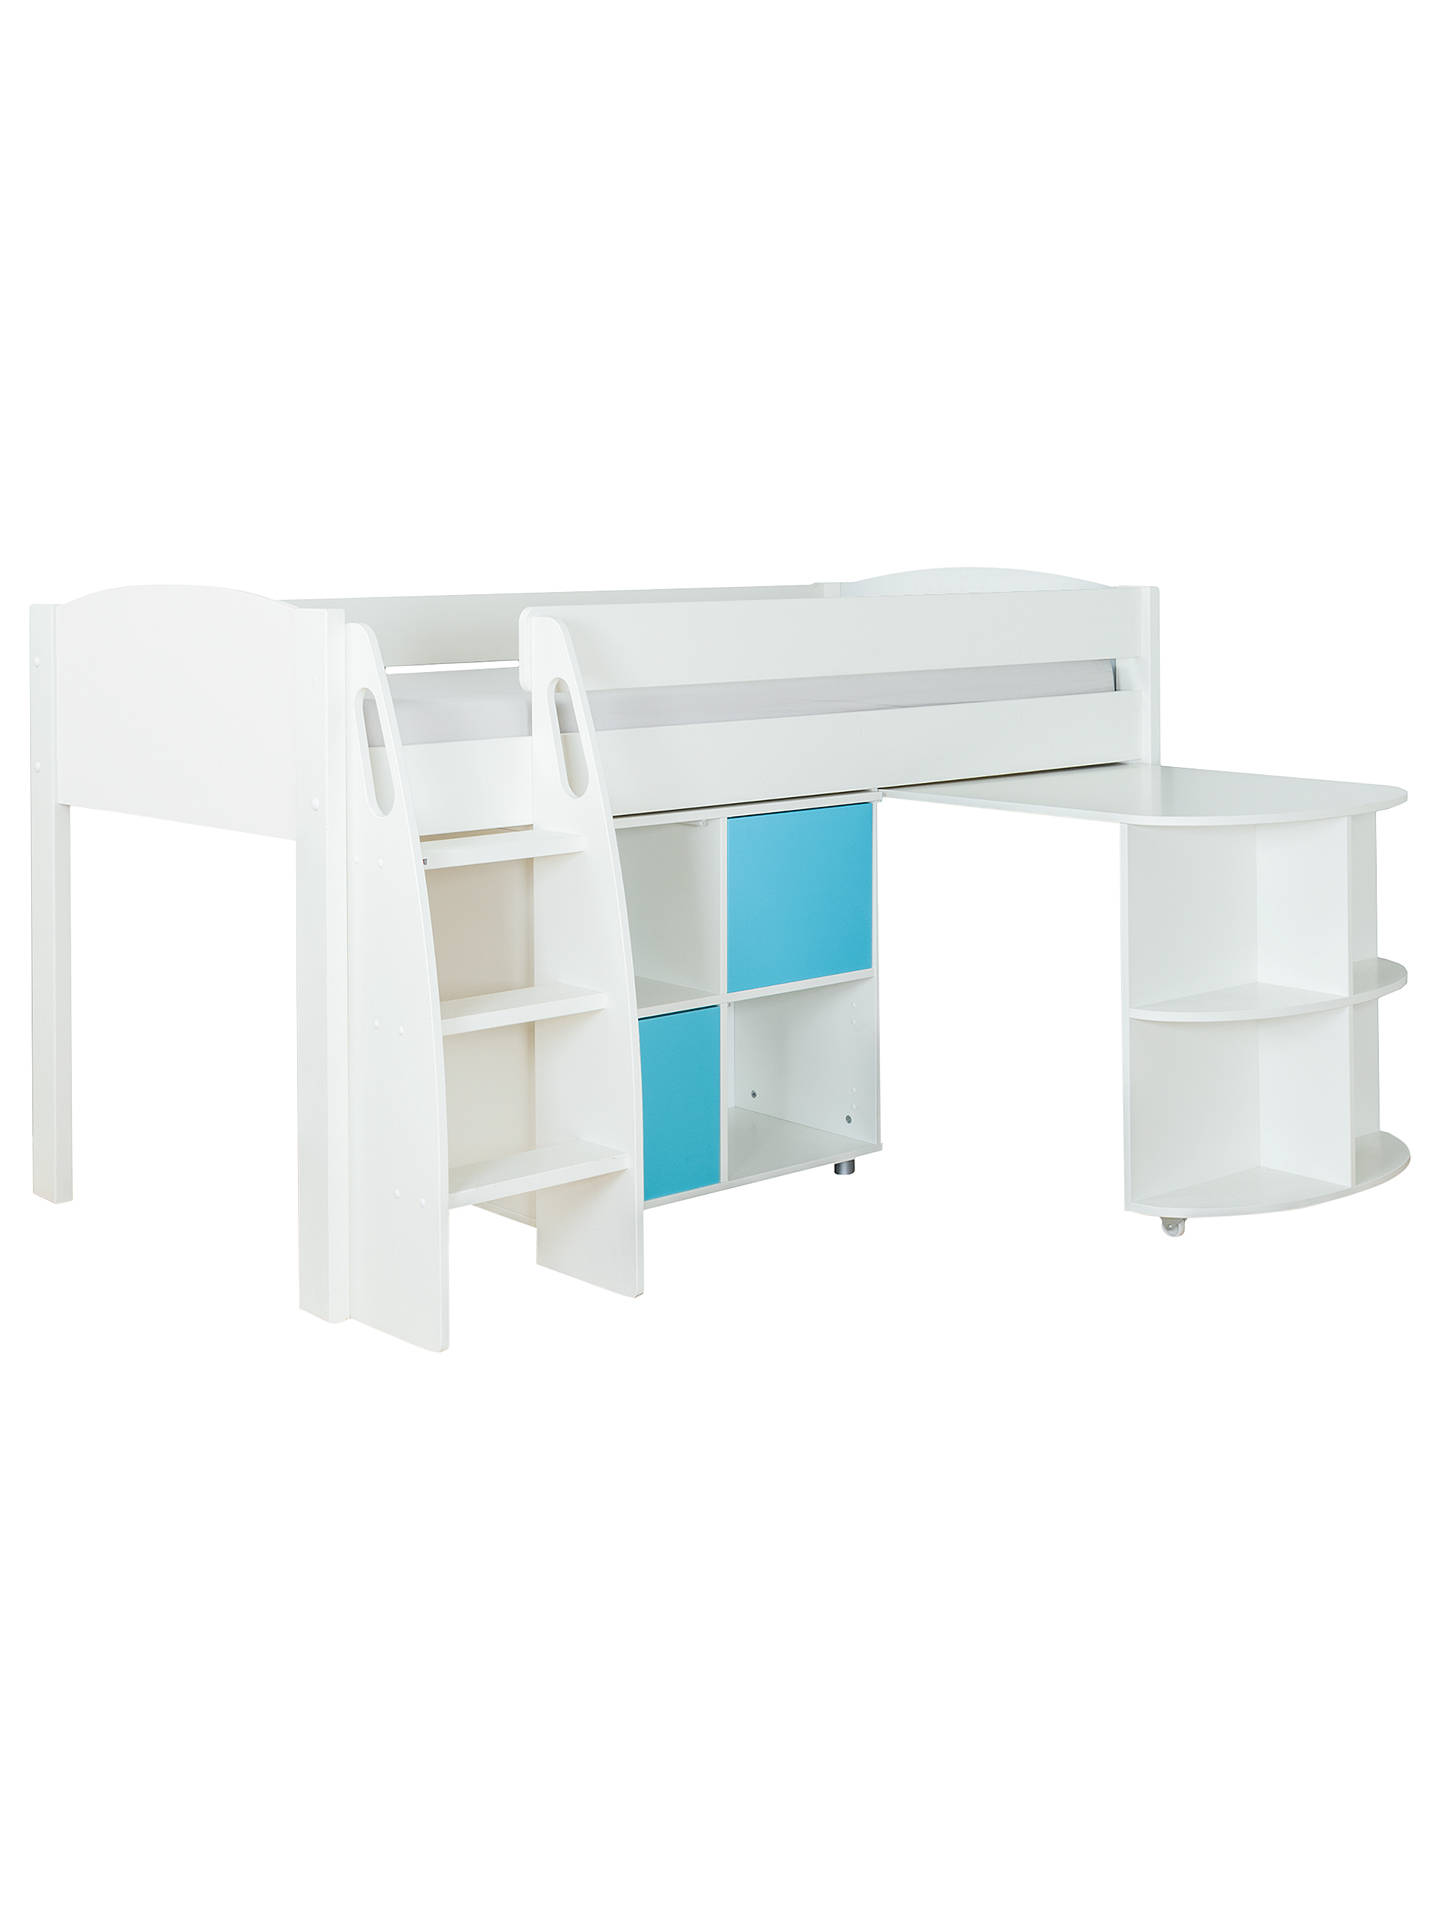 BuyStompa Uno S Plus Mid-Sleeper with White Headboard, Pull-Out Desk and 2 Door Cube Unit, White/Aqua Online at johnlewis.com